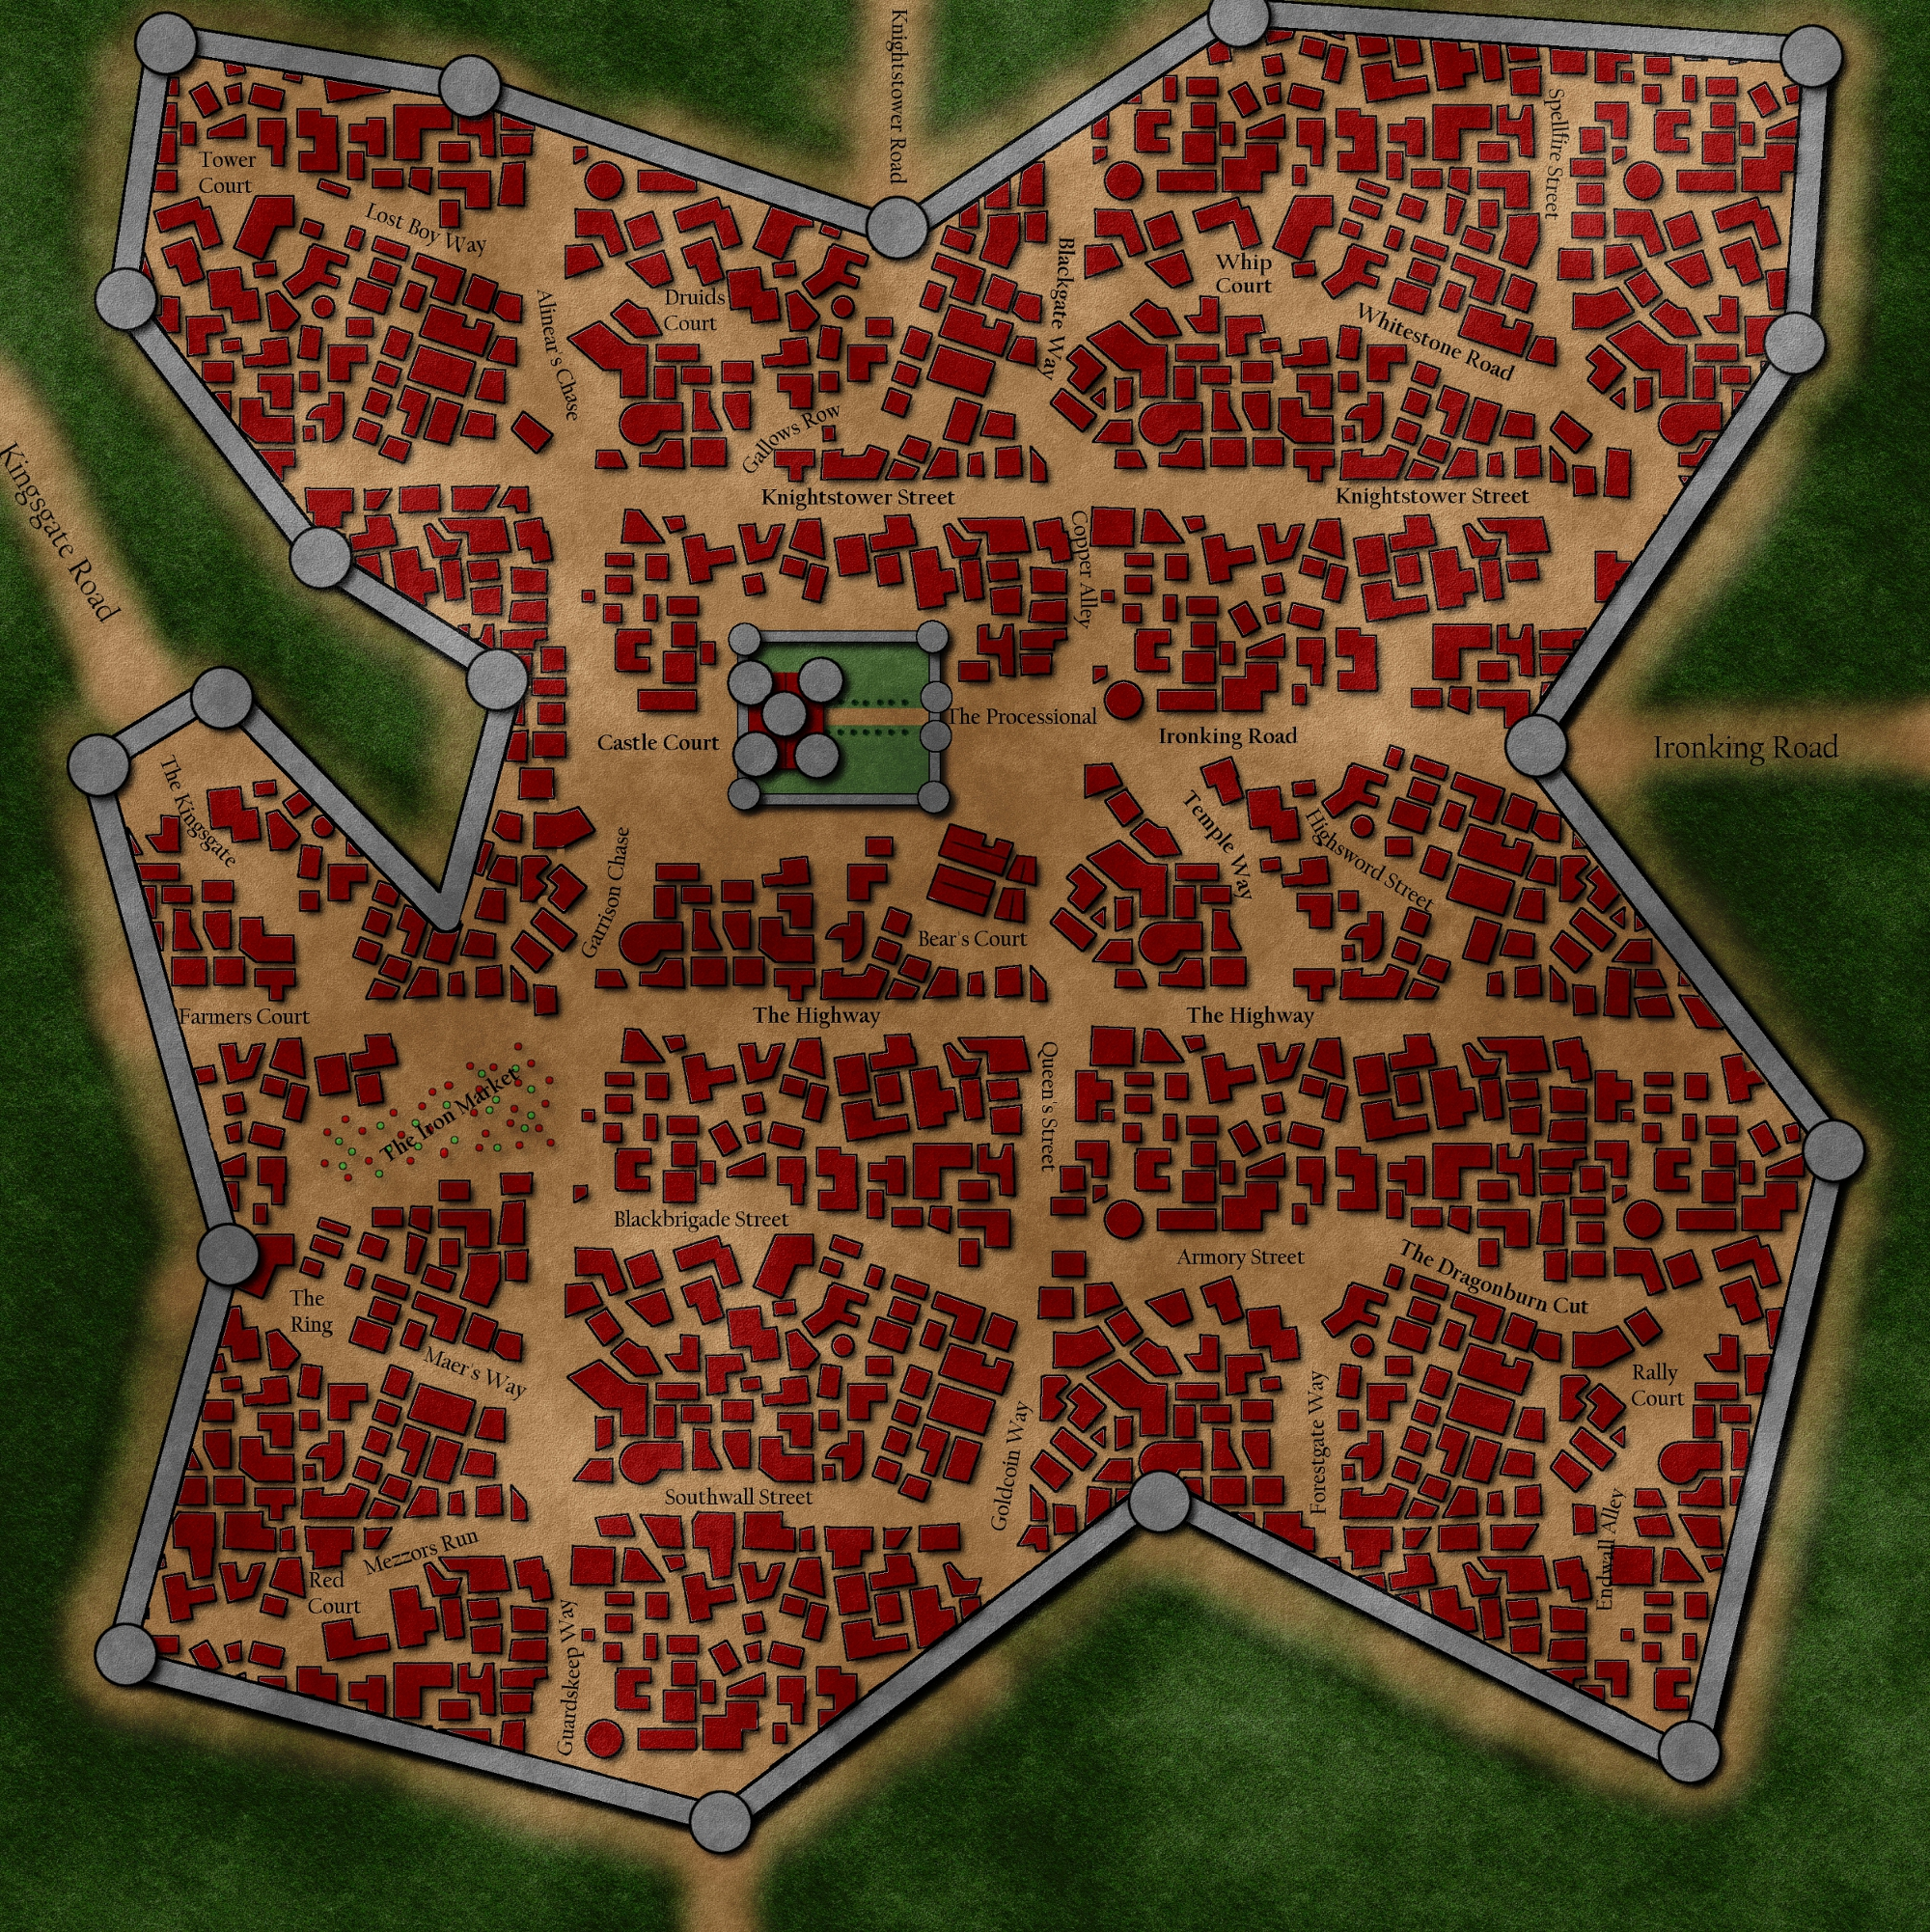 Ironwrought: The capital city of the Iron Kingdom